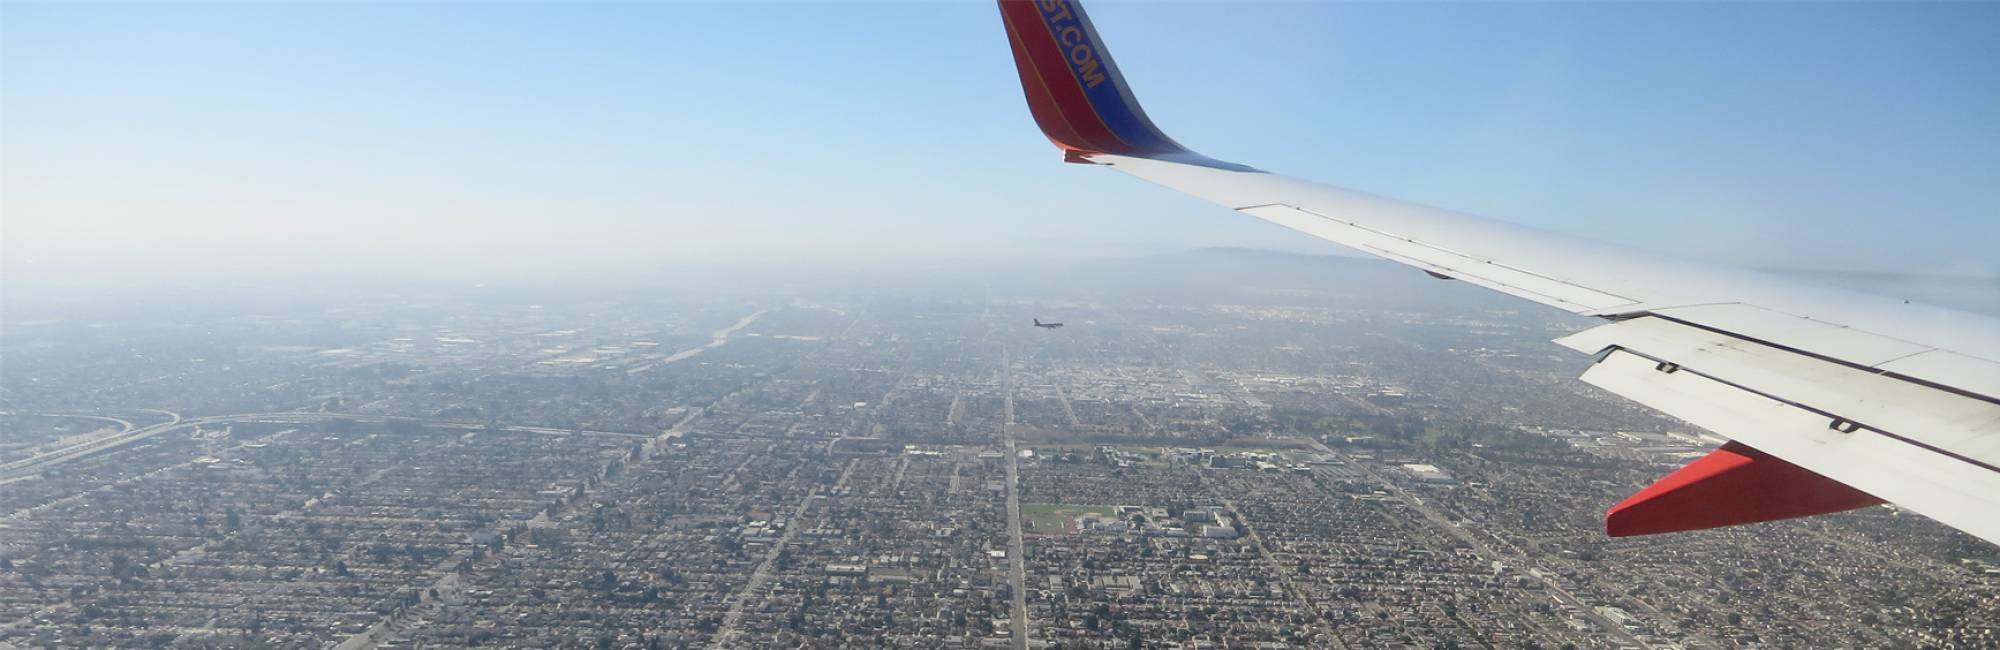 Two airliners fly over densely populated Los Angeles as smog blurs the horizon in this 2015 photo